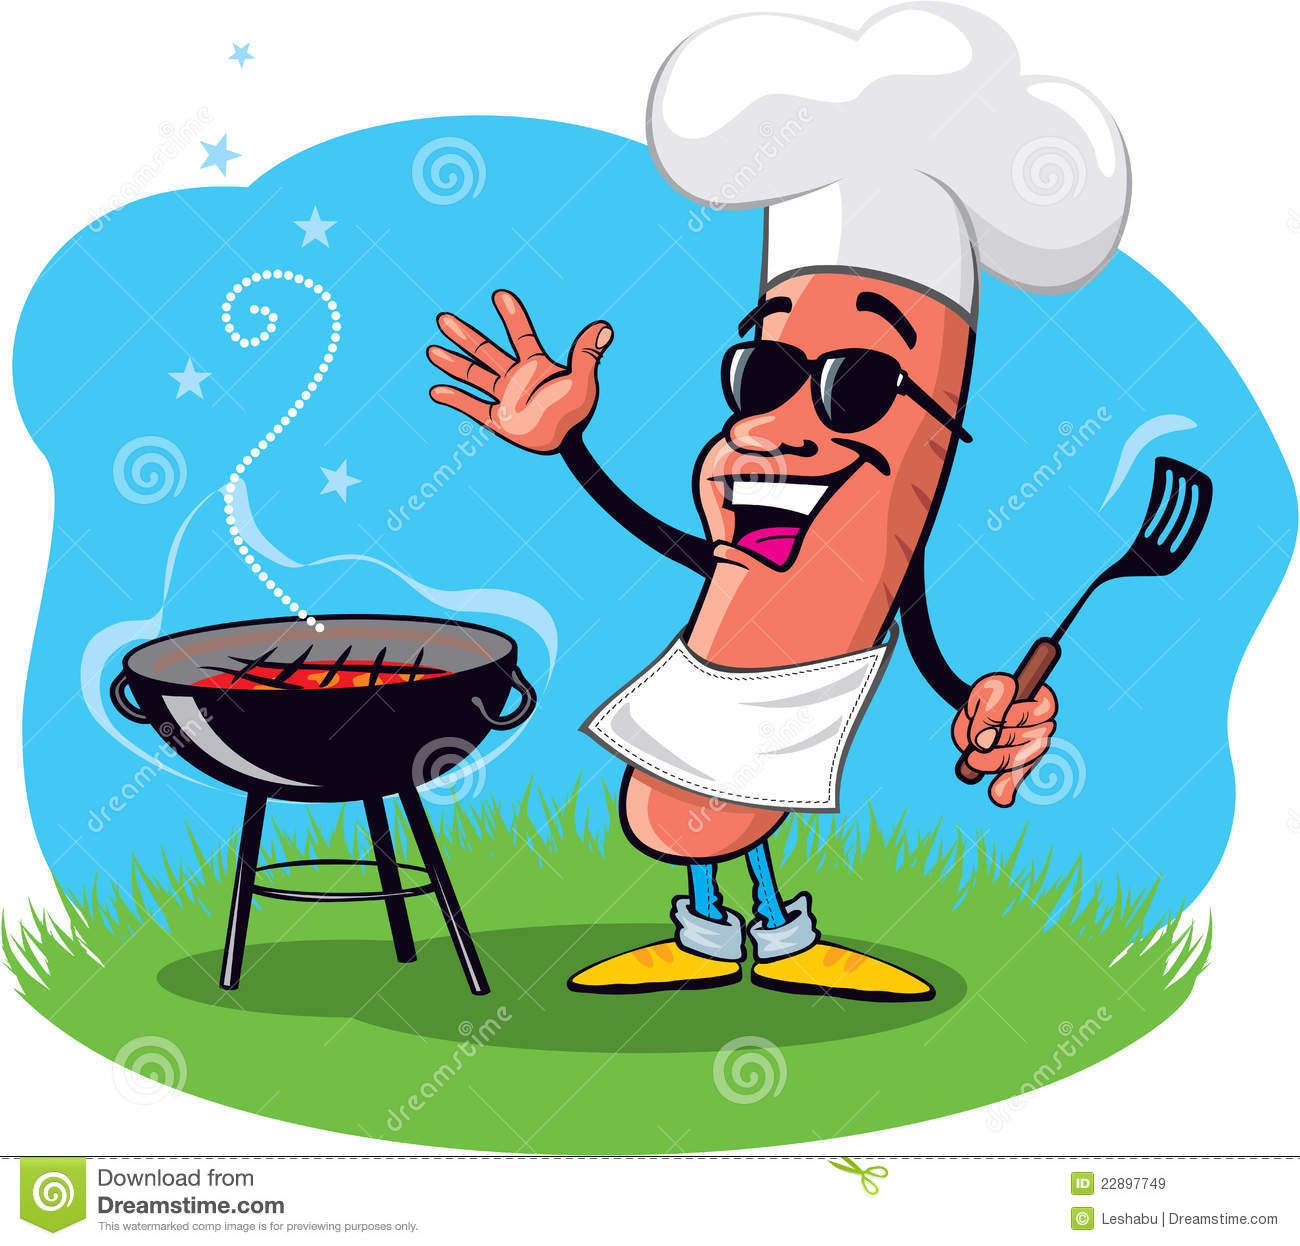 BBQ And Sun Royalty Free Stock Image - Image: 21827536